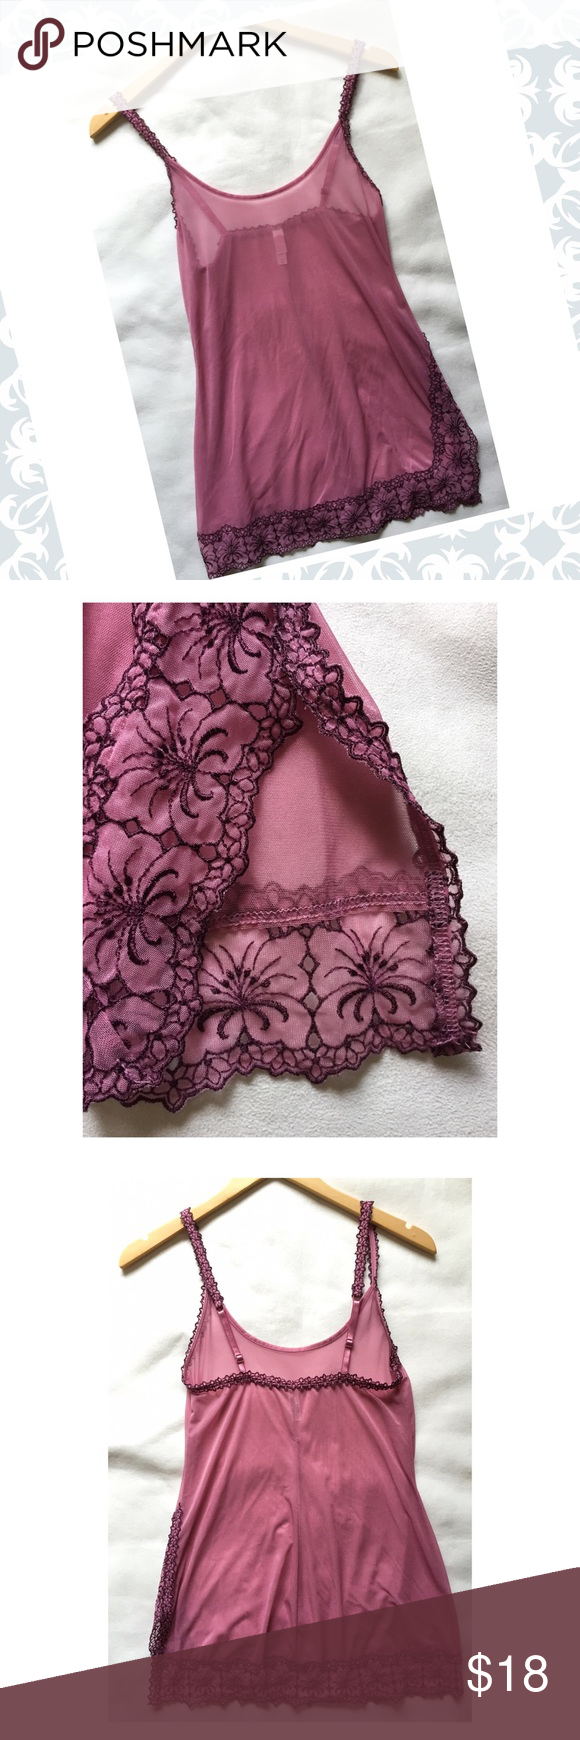 Victoria's Secret sexy sheer chemise💄⚡️ Pretty rosey mauve sheer chemise in size XS. Classic Victoria's Secret with slider straps, slit on the side and pretty flower appliquéd lining. 26in. long, chest 14in. across, hip area laying flat 17in. across. 80% nylon/20% spandex. Will best fit XXS-XS. Was washed but never tried on. Victoria's Secret Intimates & Sleepwear Chemises & Slips